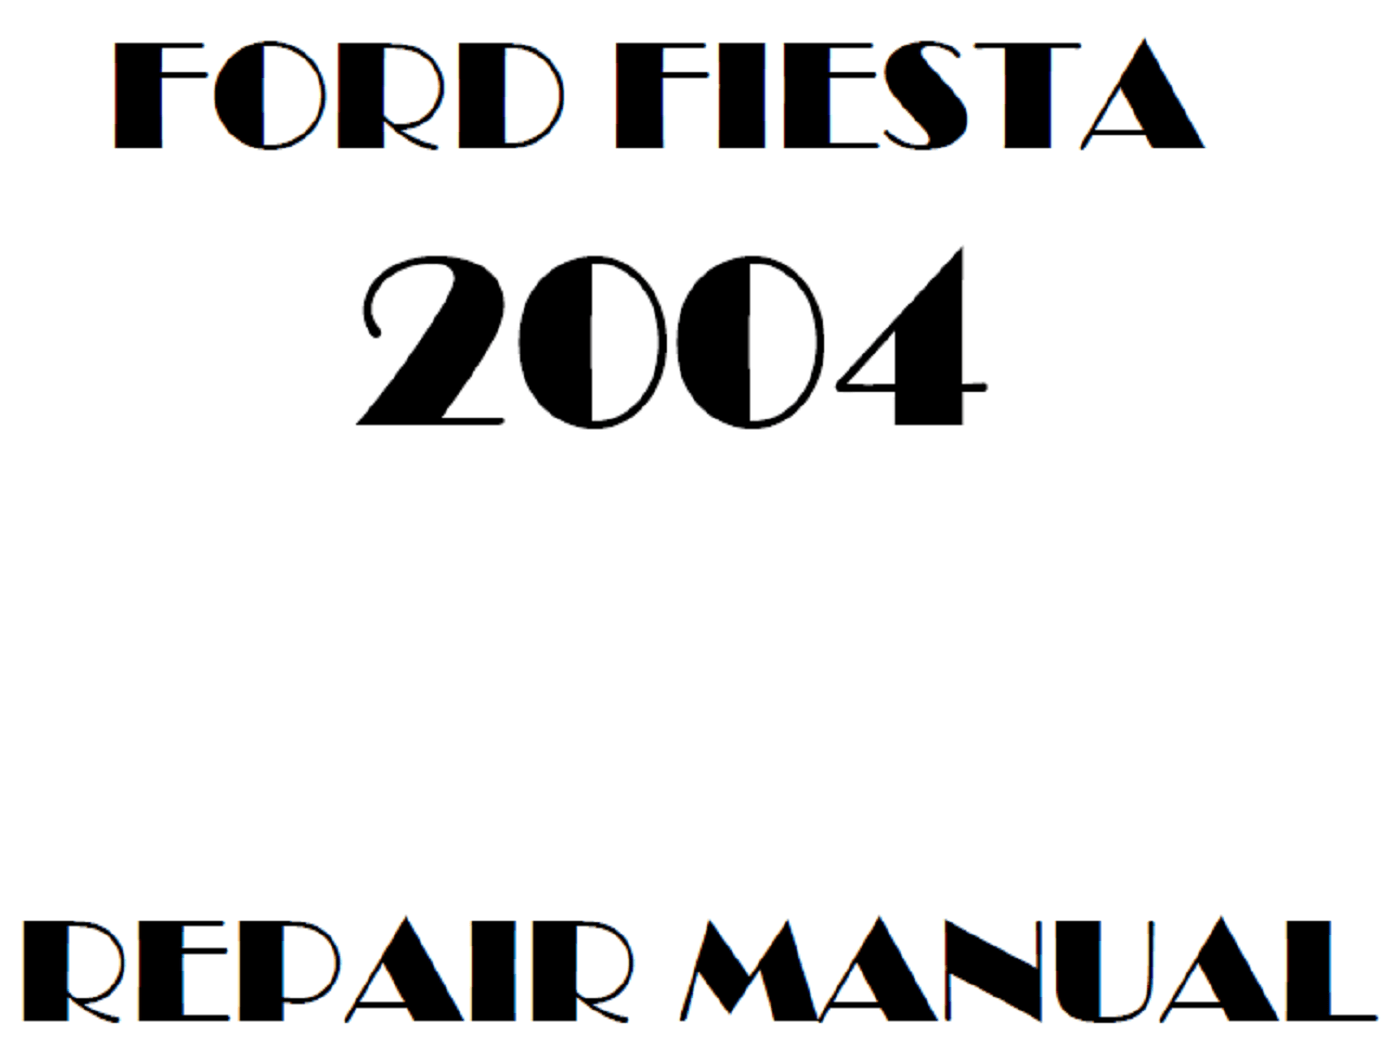 2004 Ford Fiesta repair manual